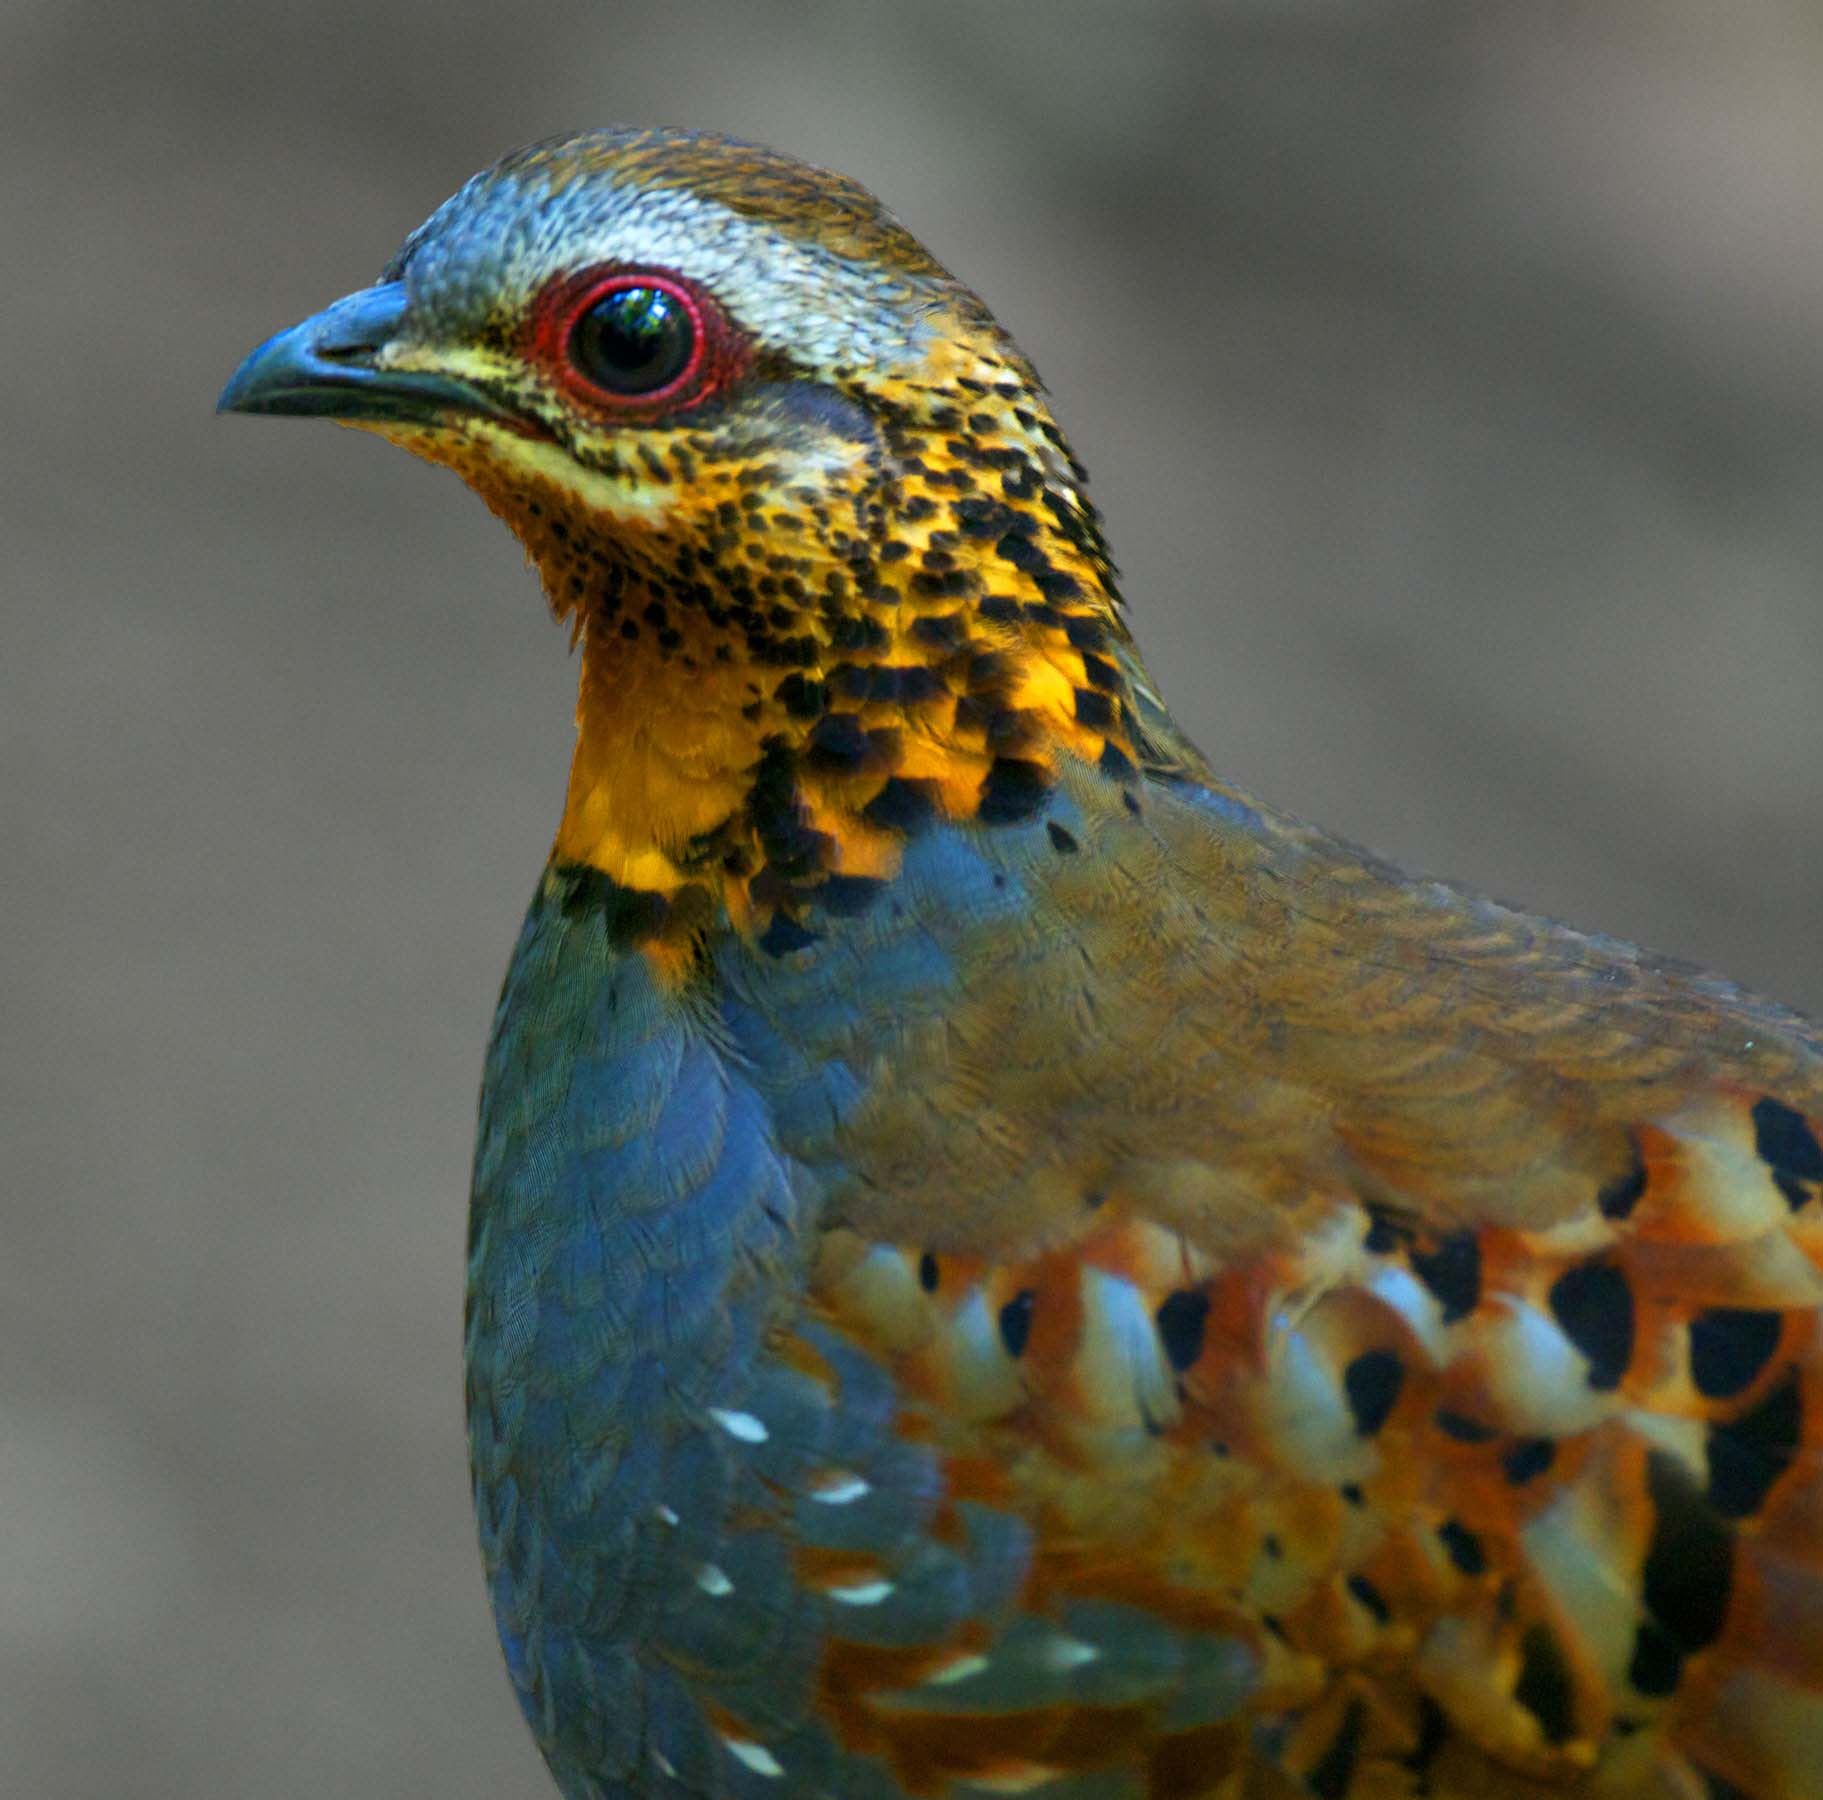 Rufous throated partridge face pictures